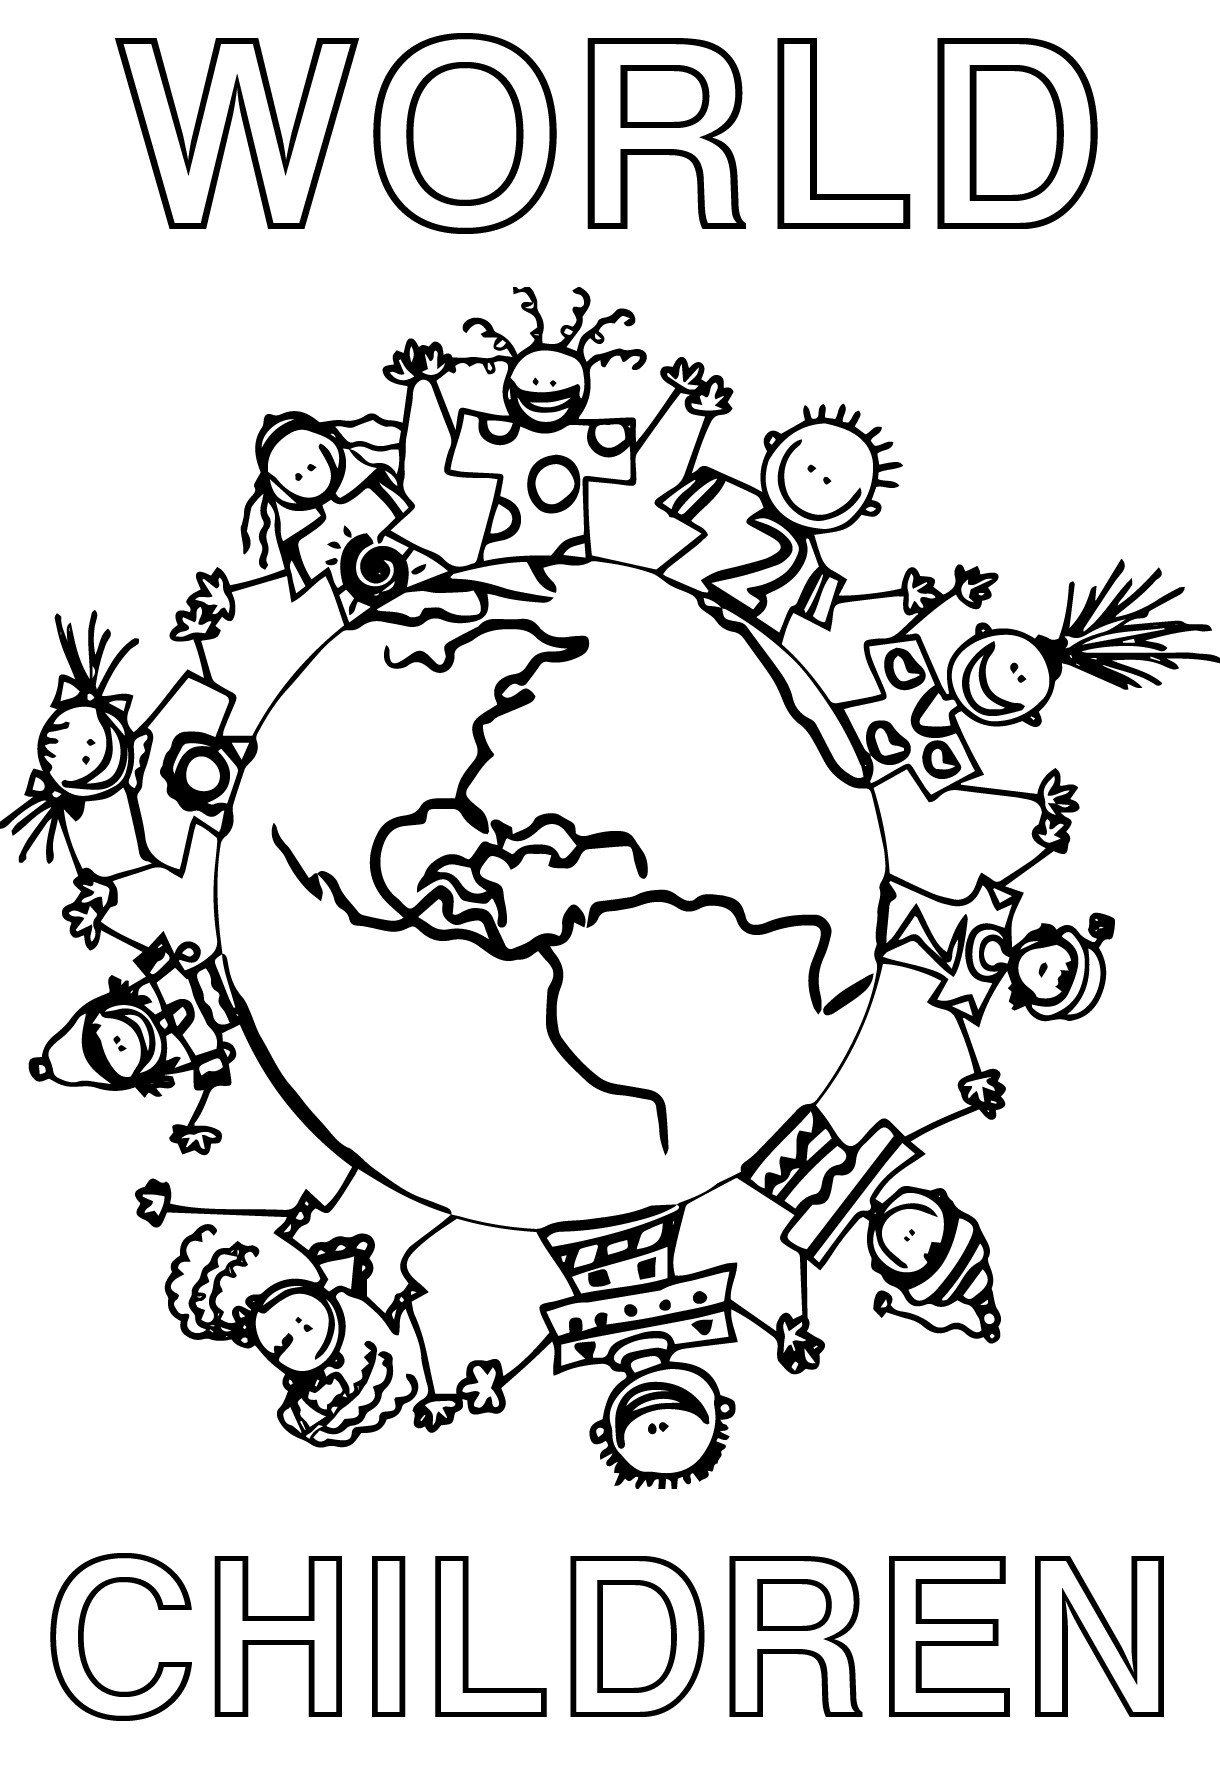 flags of the world colouring kids page world flags 2 coloring pages colouring world the of flags